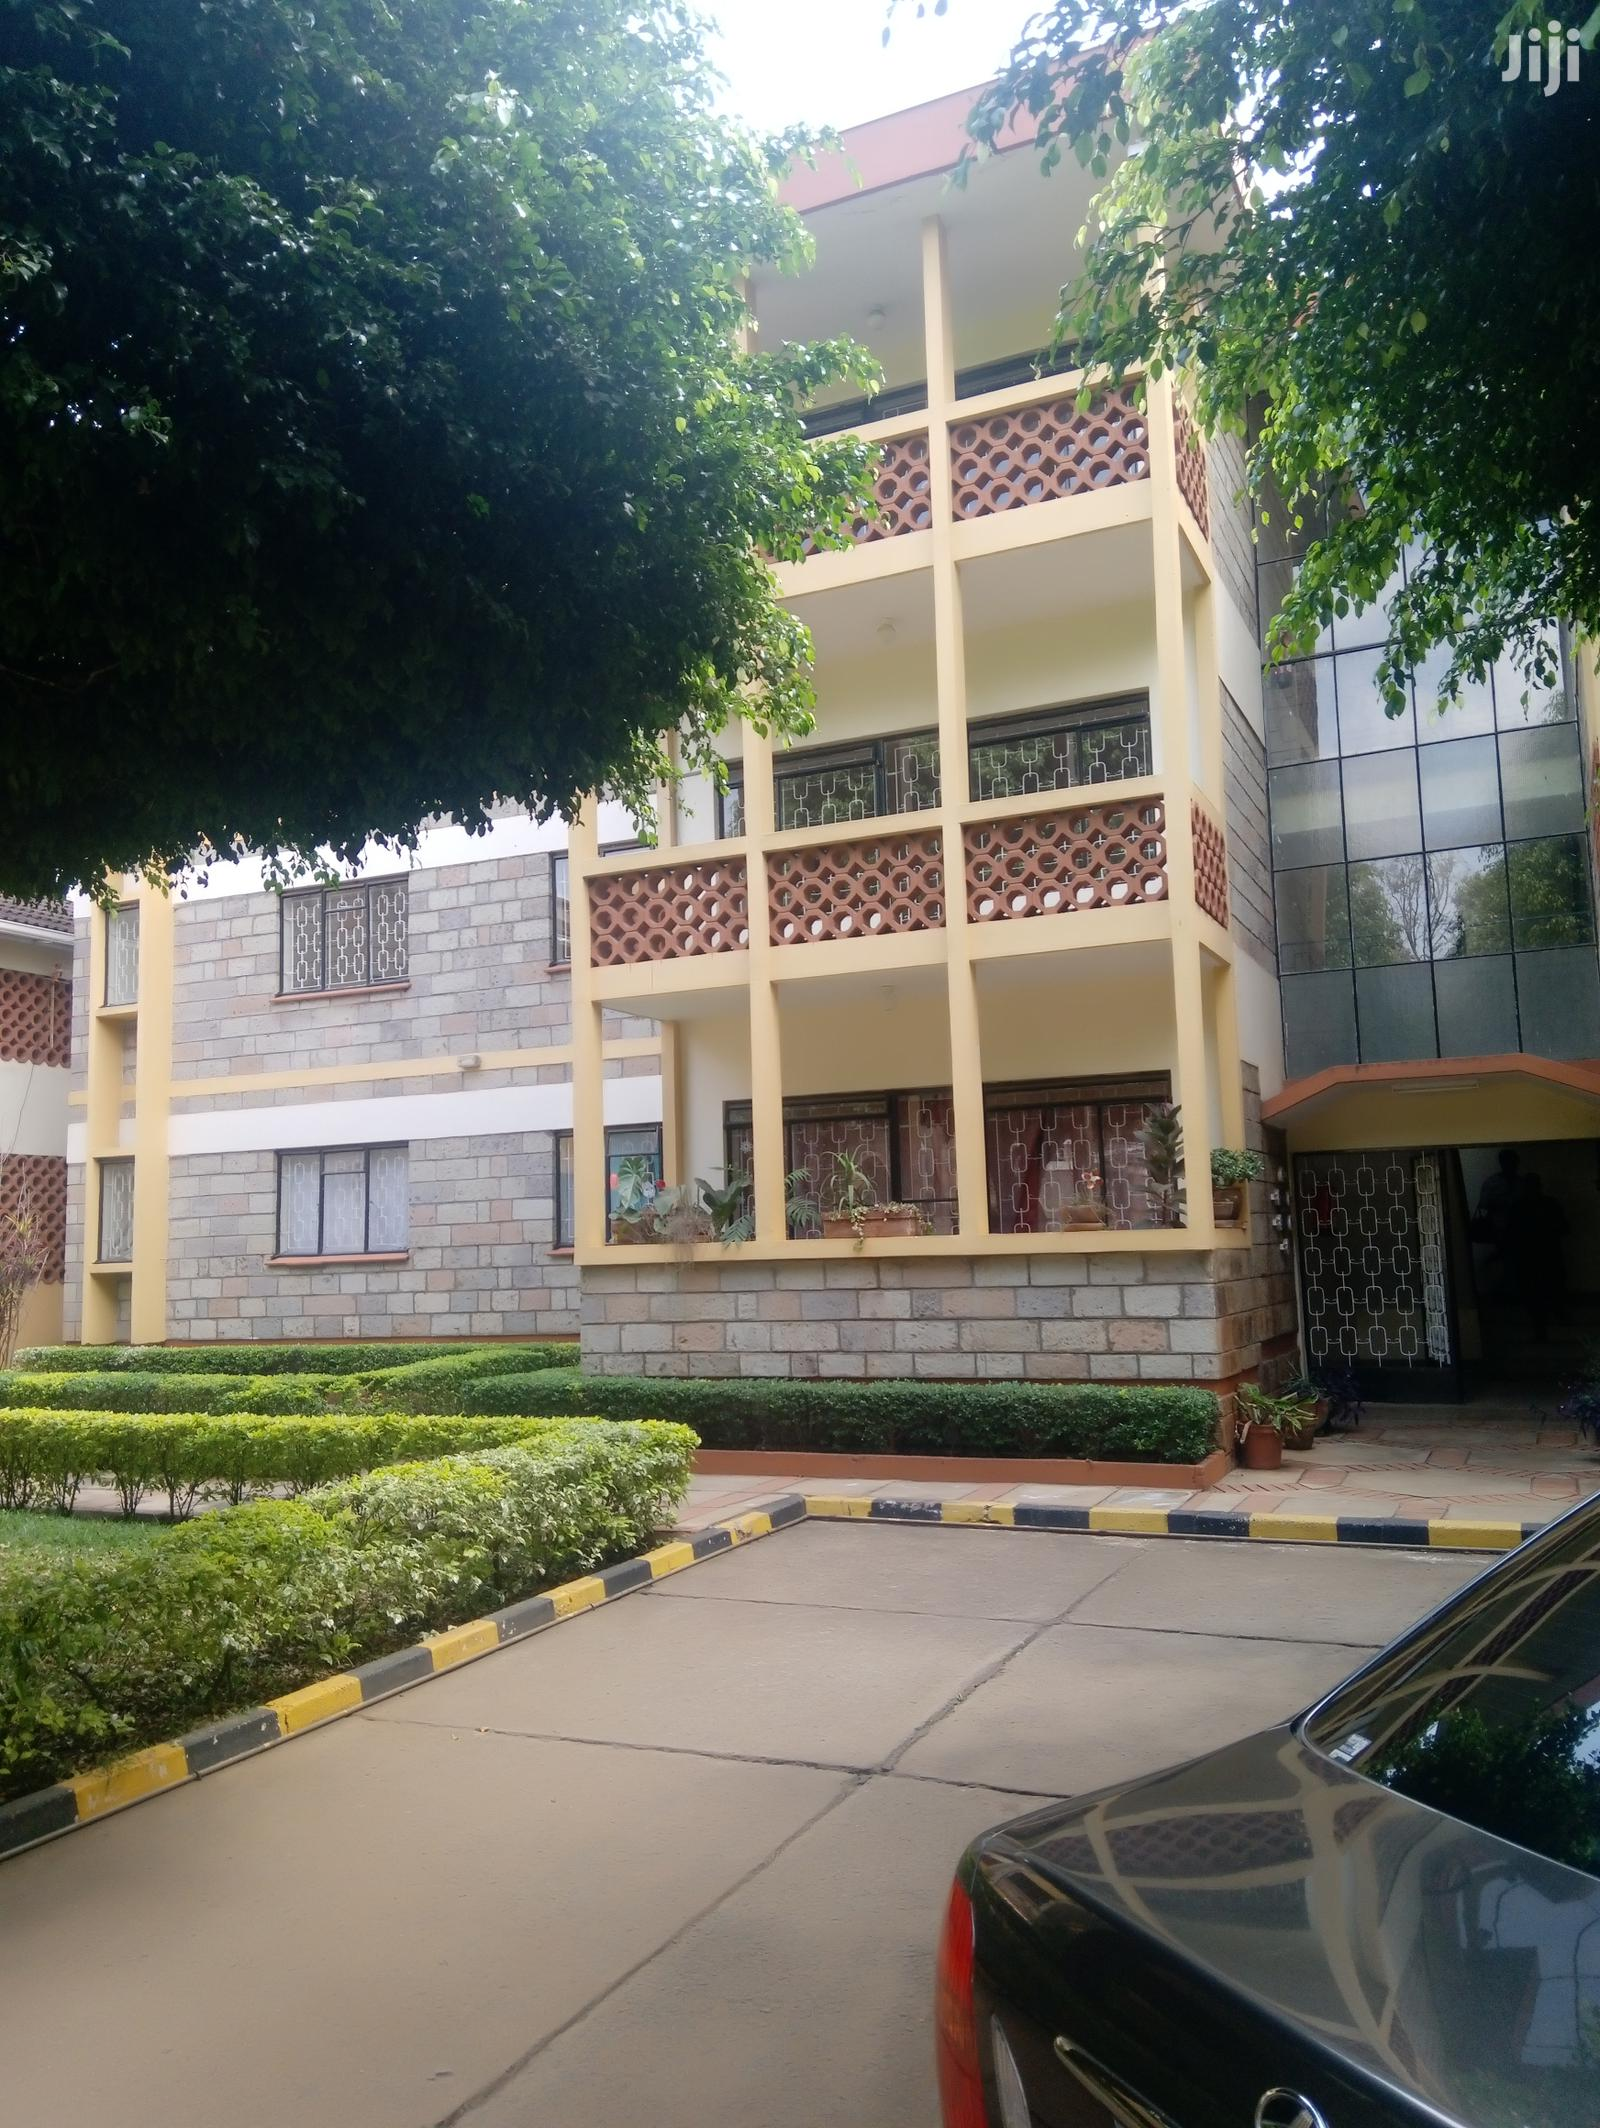 Archive: Old Muthaiga